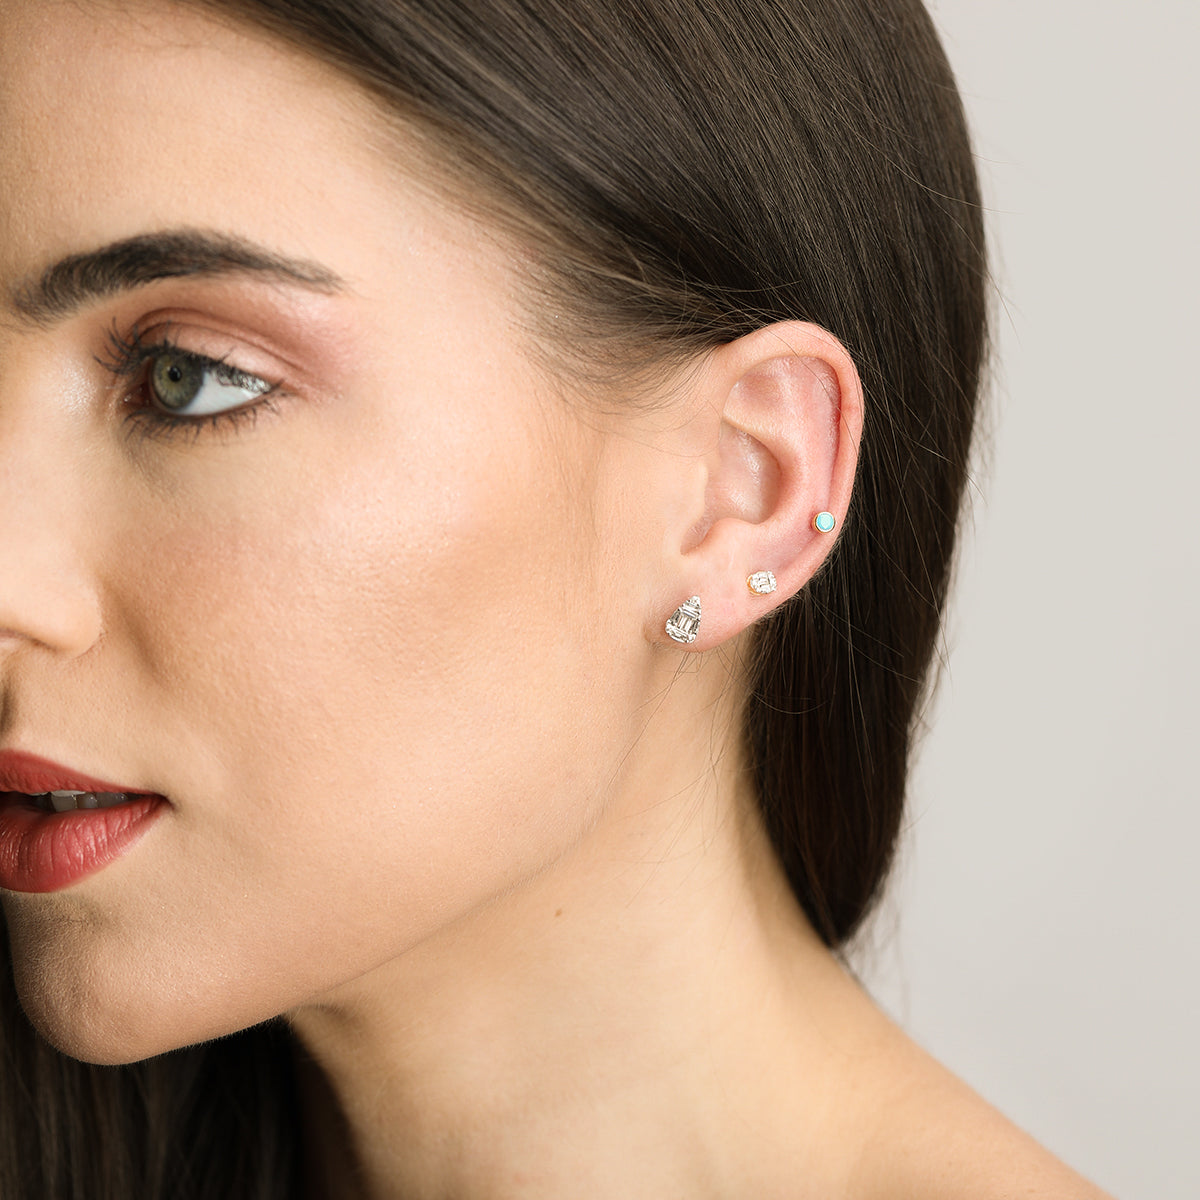 Tear Drop Diamond And Solid Gold Stud Earrings - estellacollection